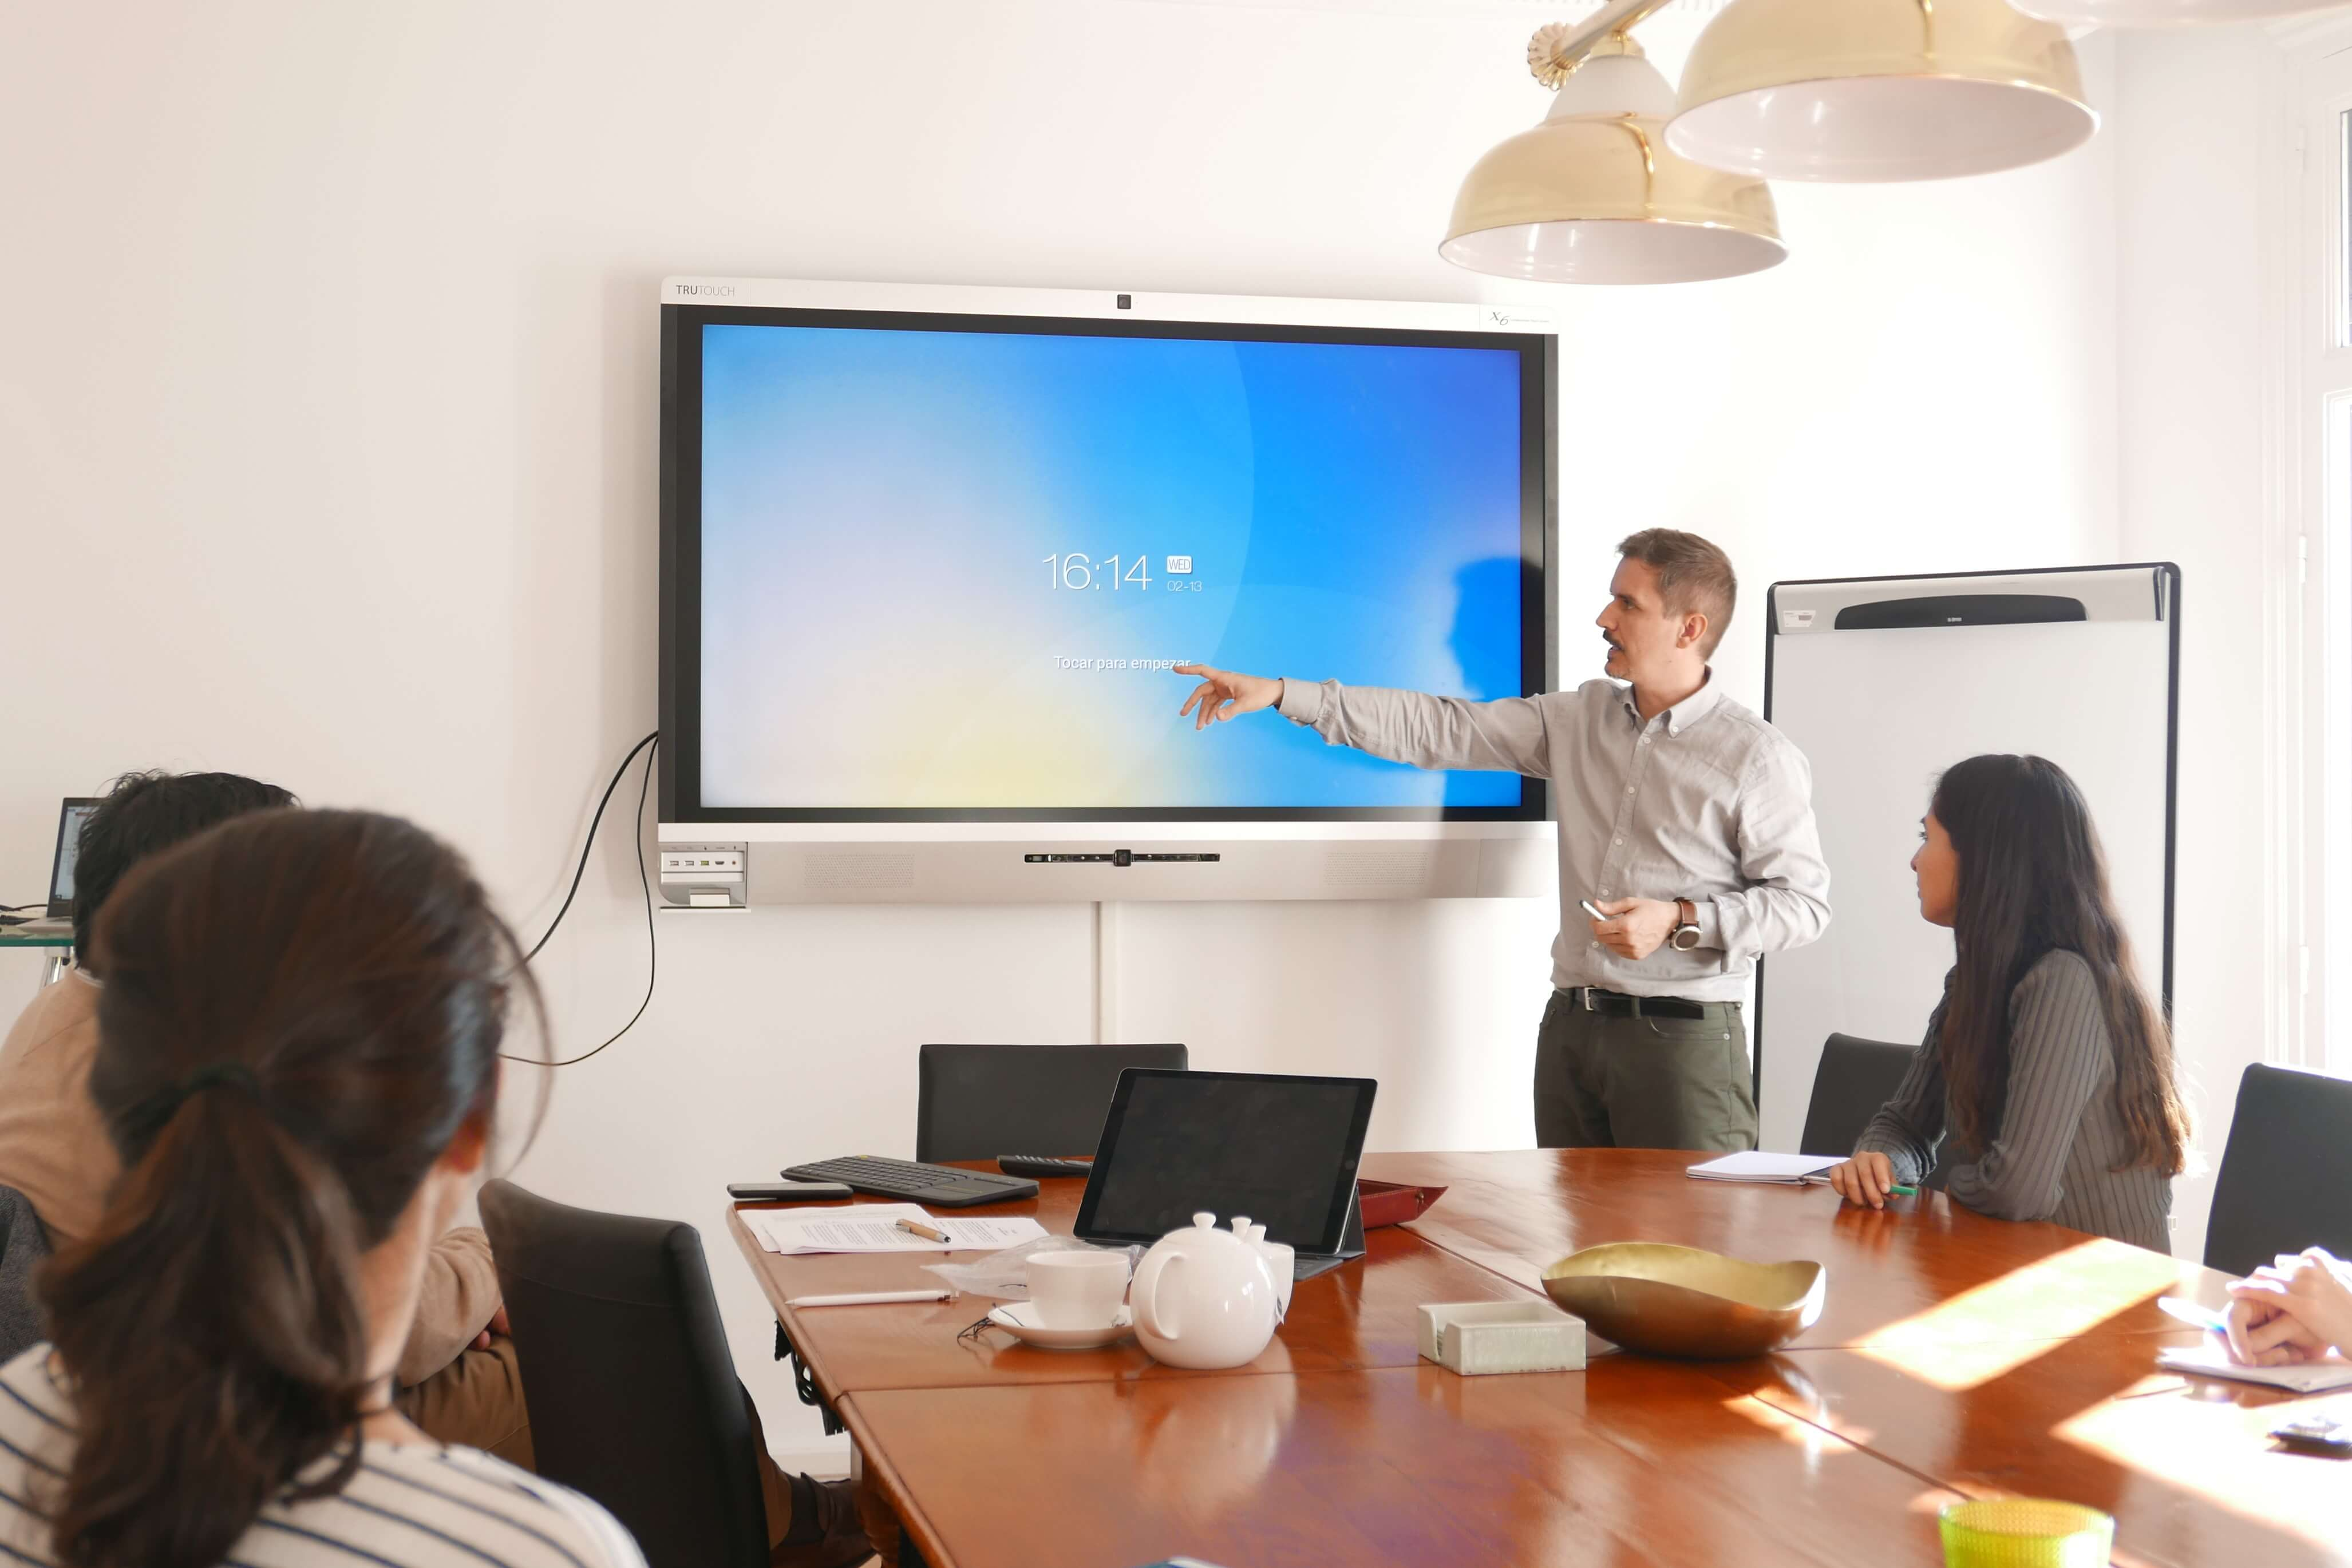 person speaking in meeting on interactive display